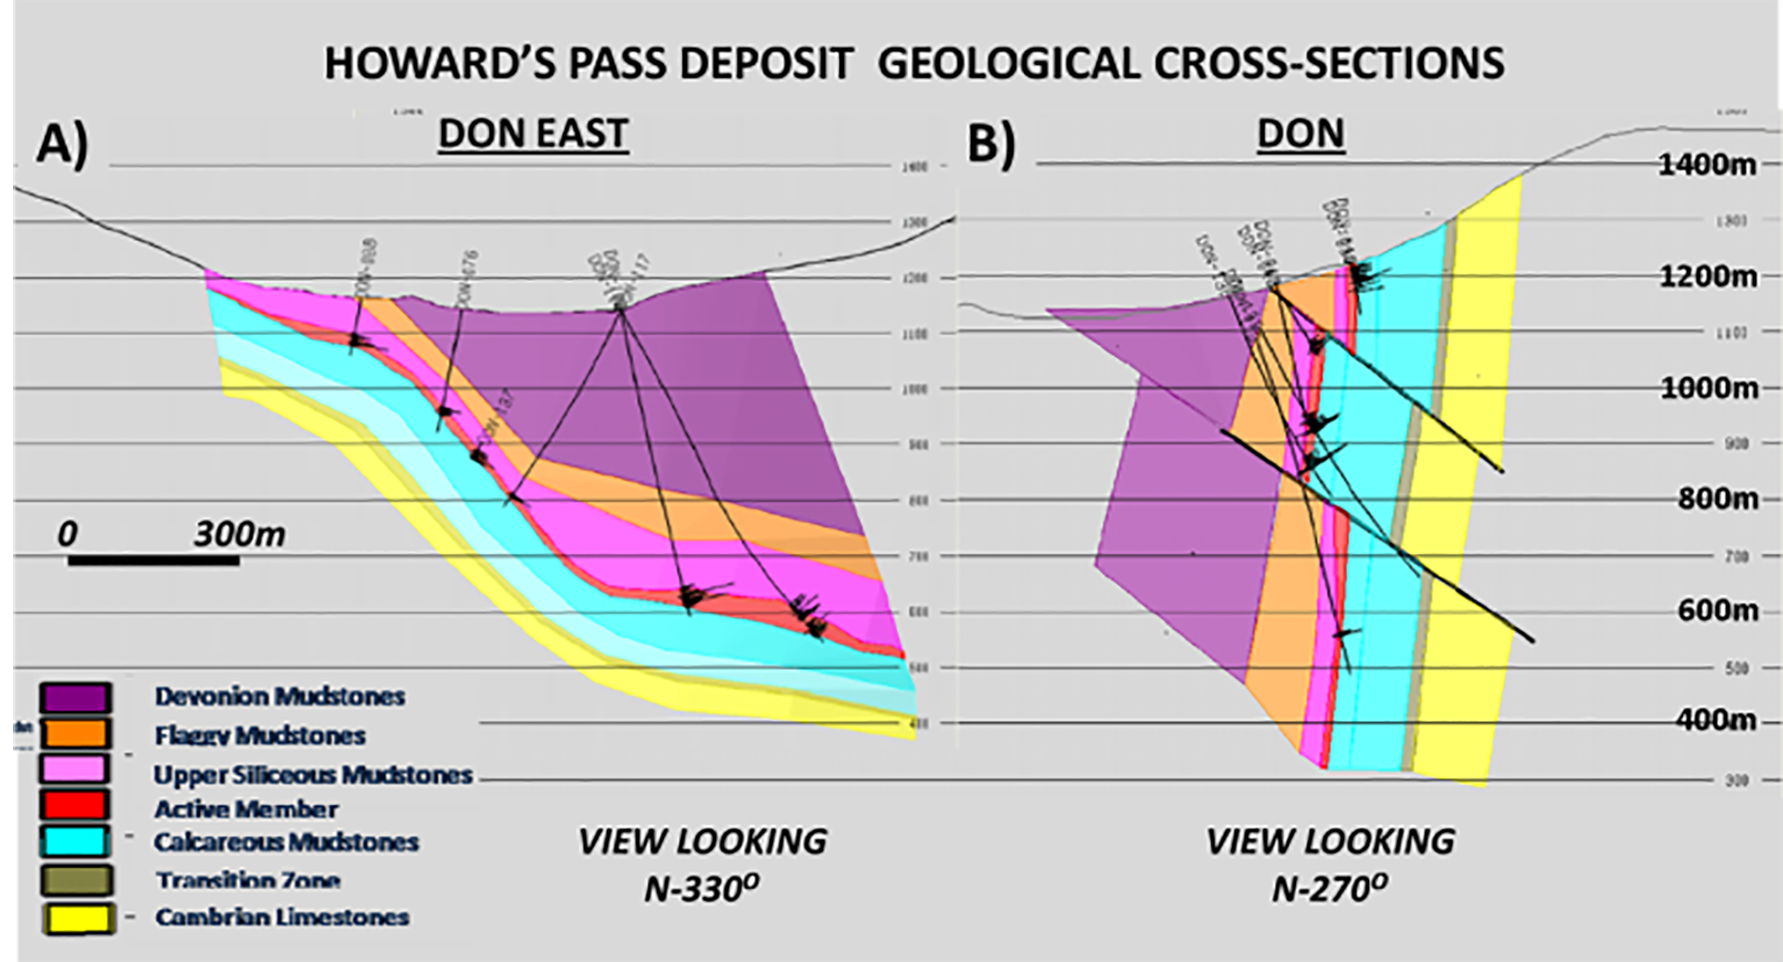 Figure 2:  Howard's Pass geological cross-sections at Don East (A) and Don deposits (B), showing complex structure, drillholes, and geologic units across HP valley (modified after O'Donnell, 2009).